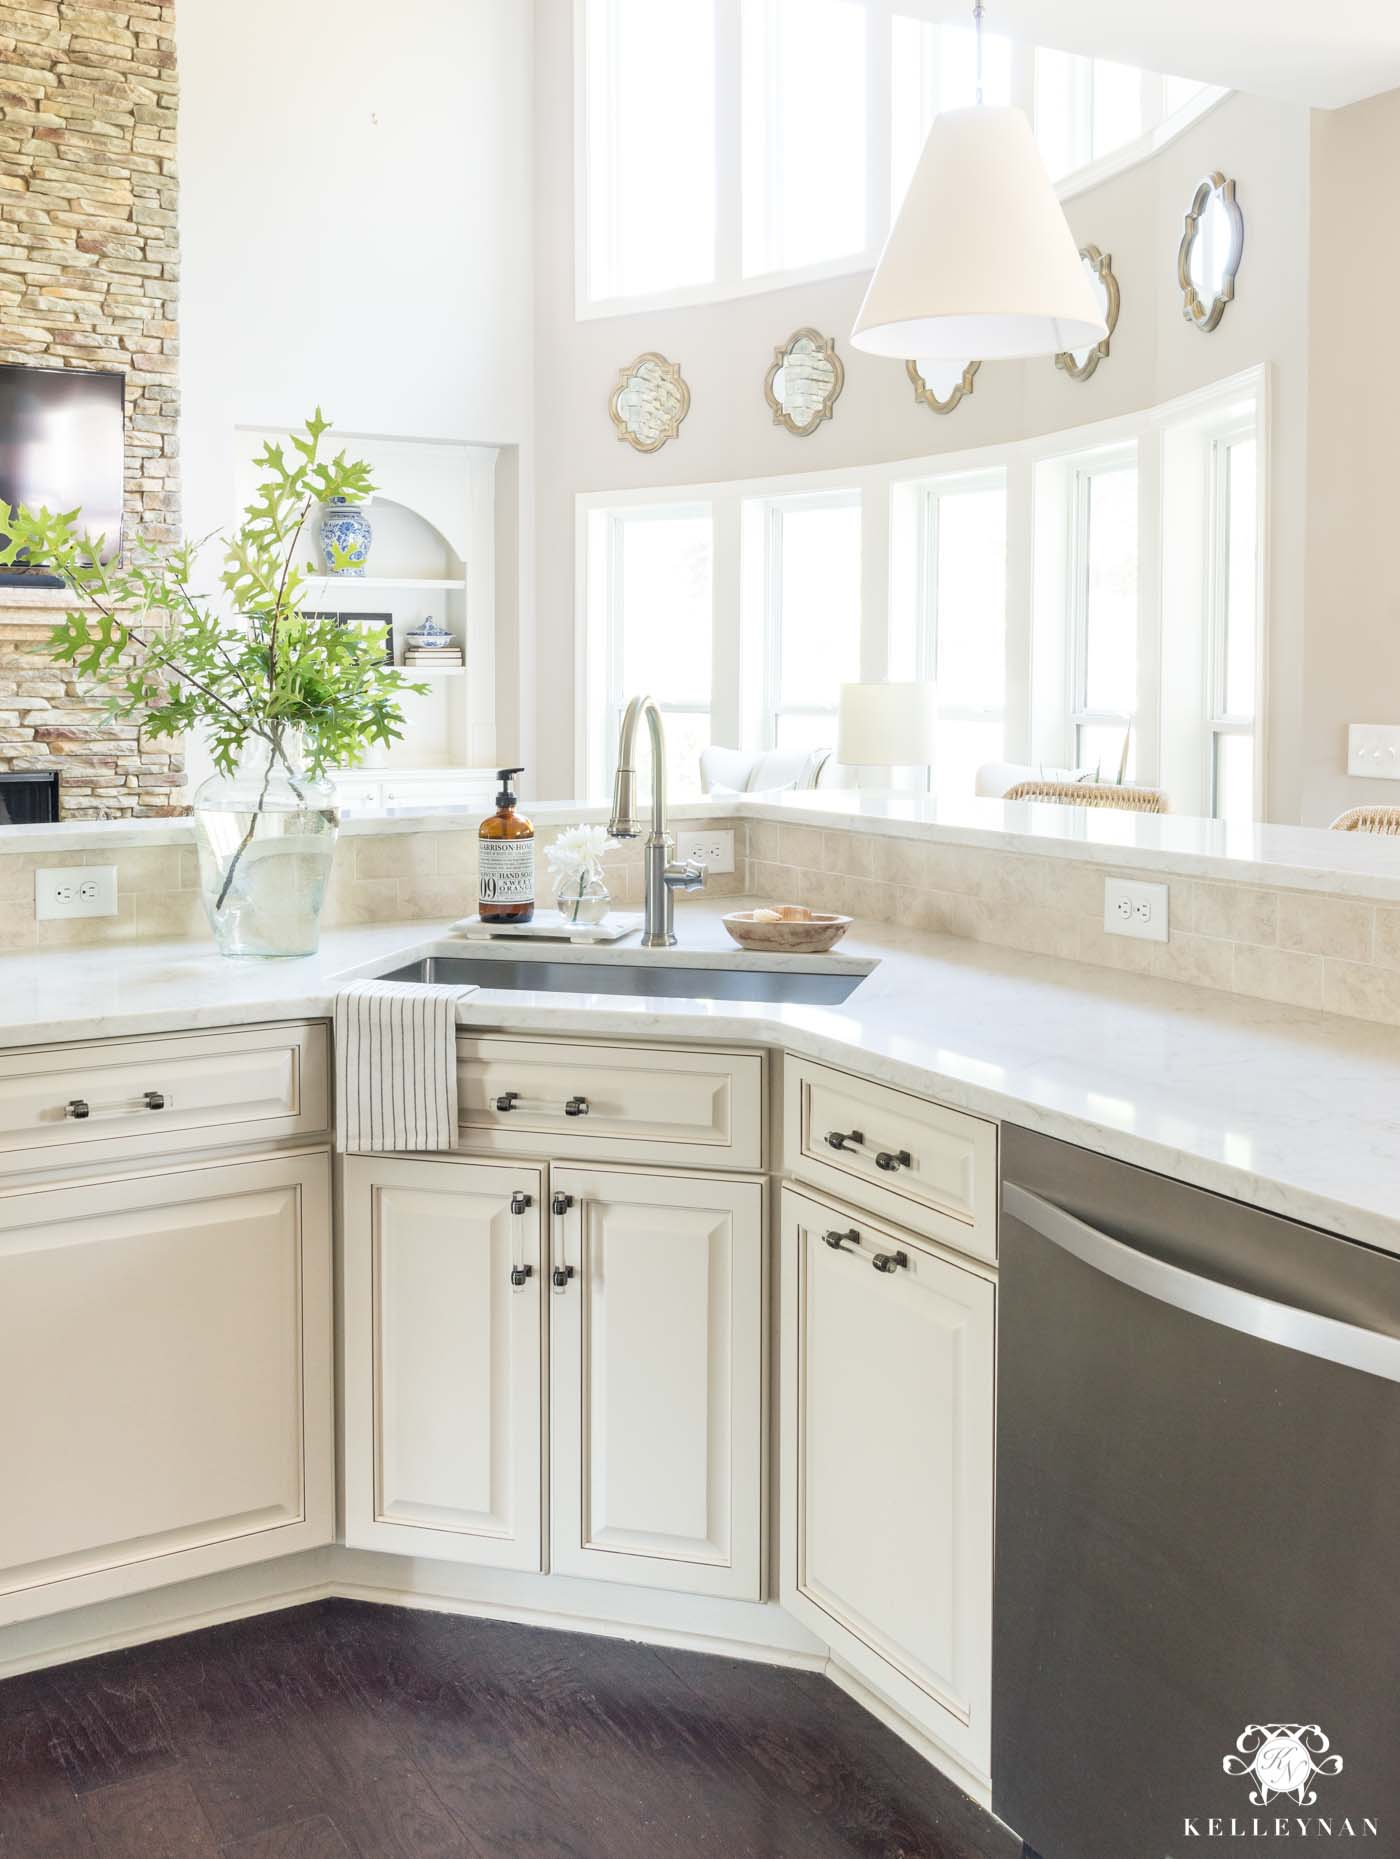 Updating an out-dated cream kitchen with white quartz countertops